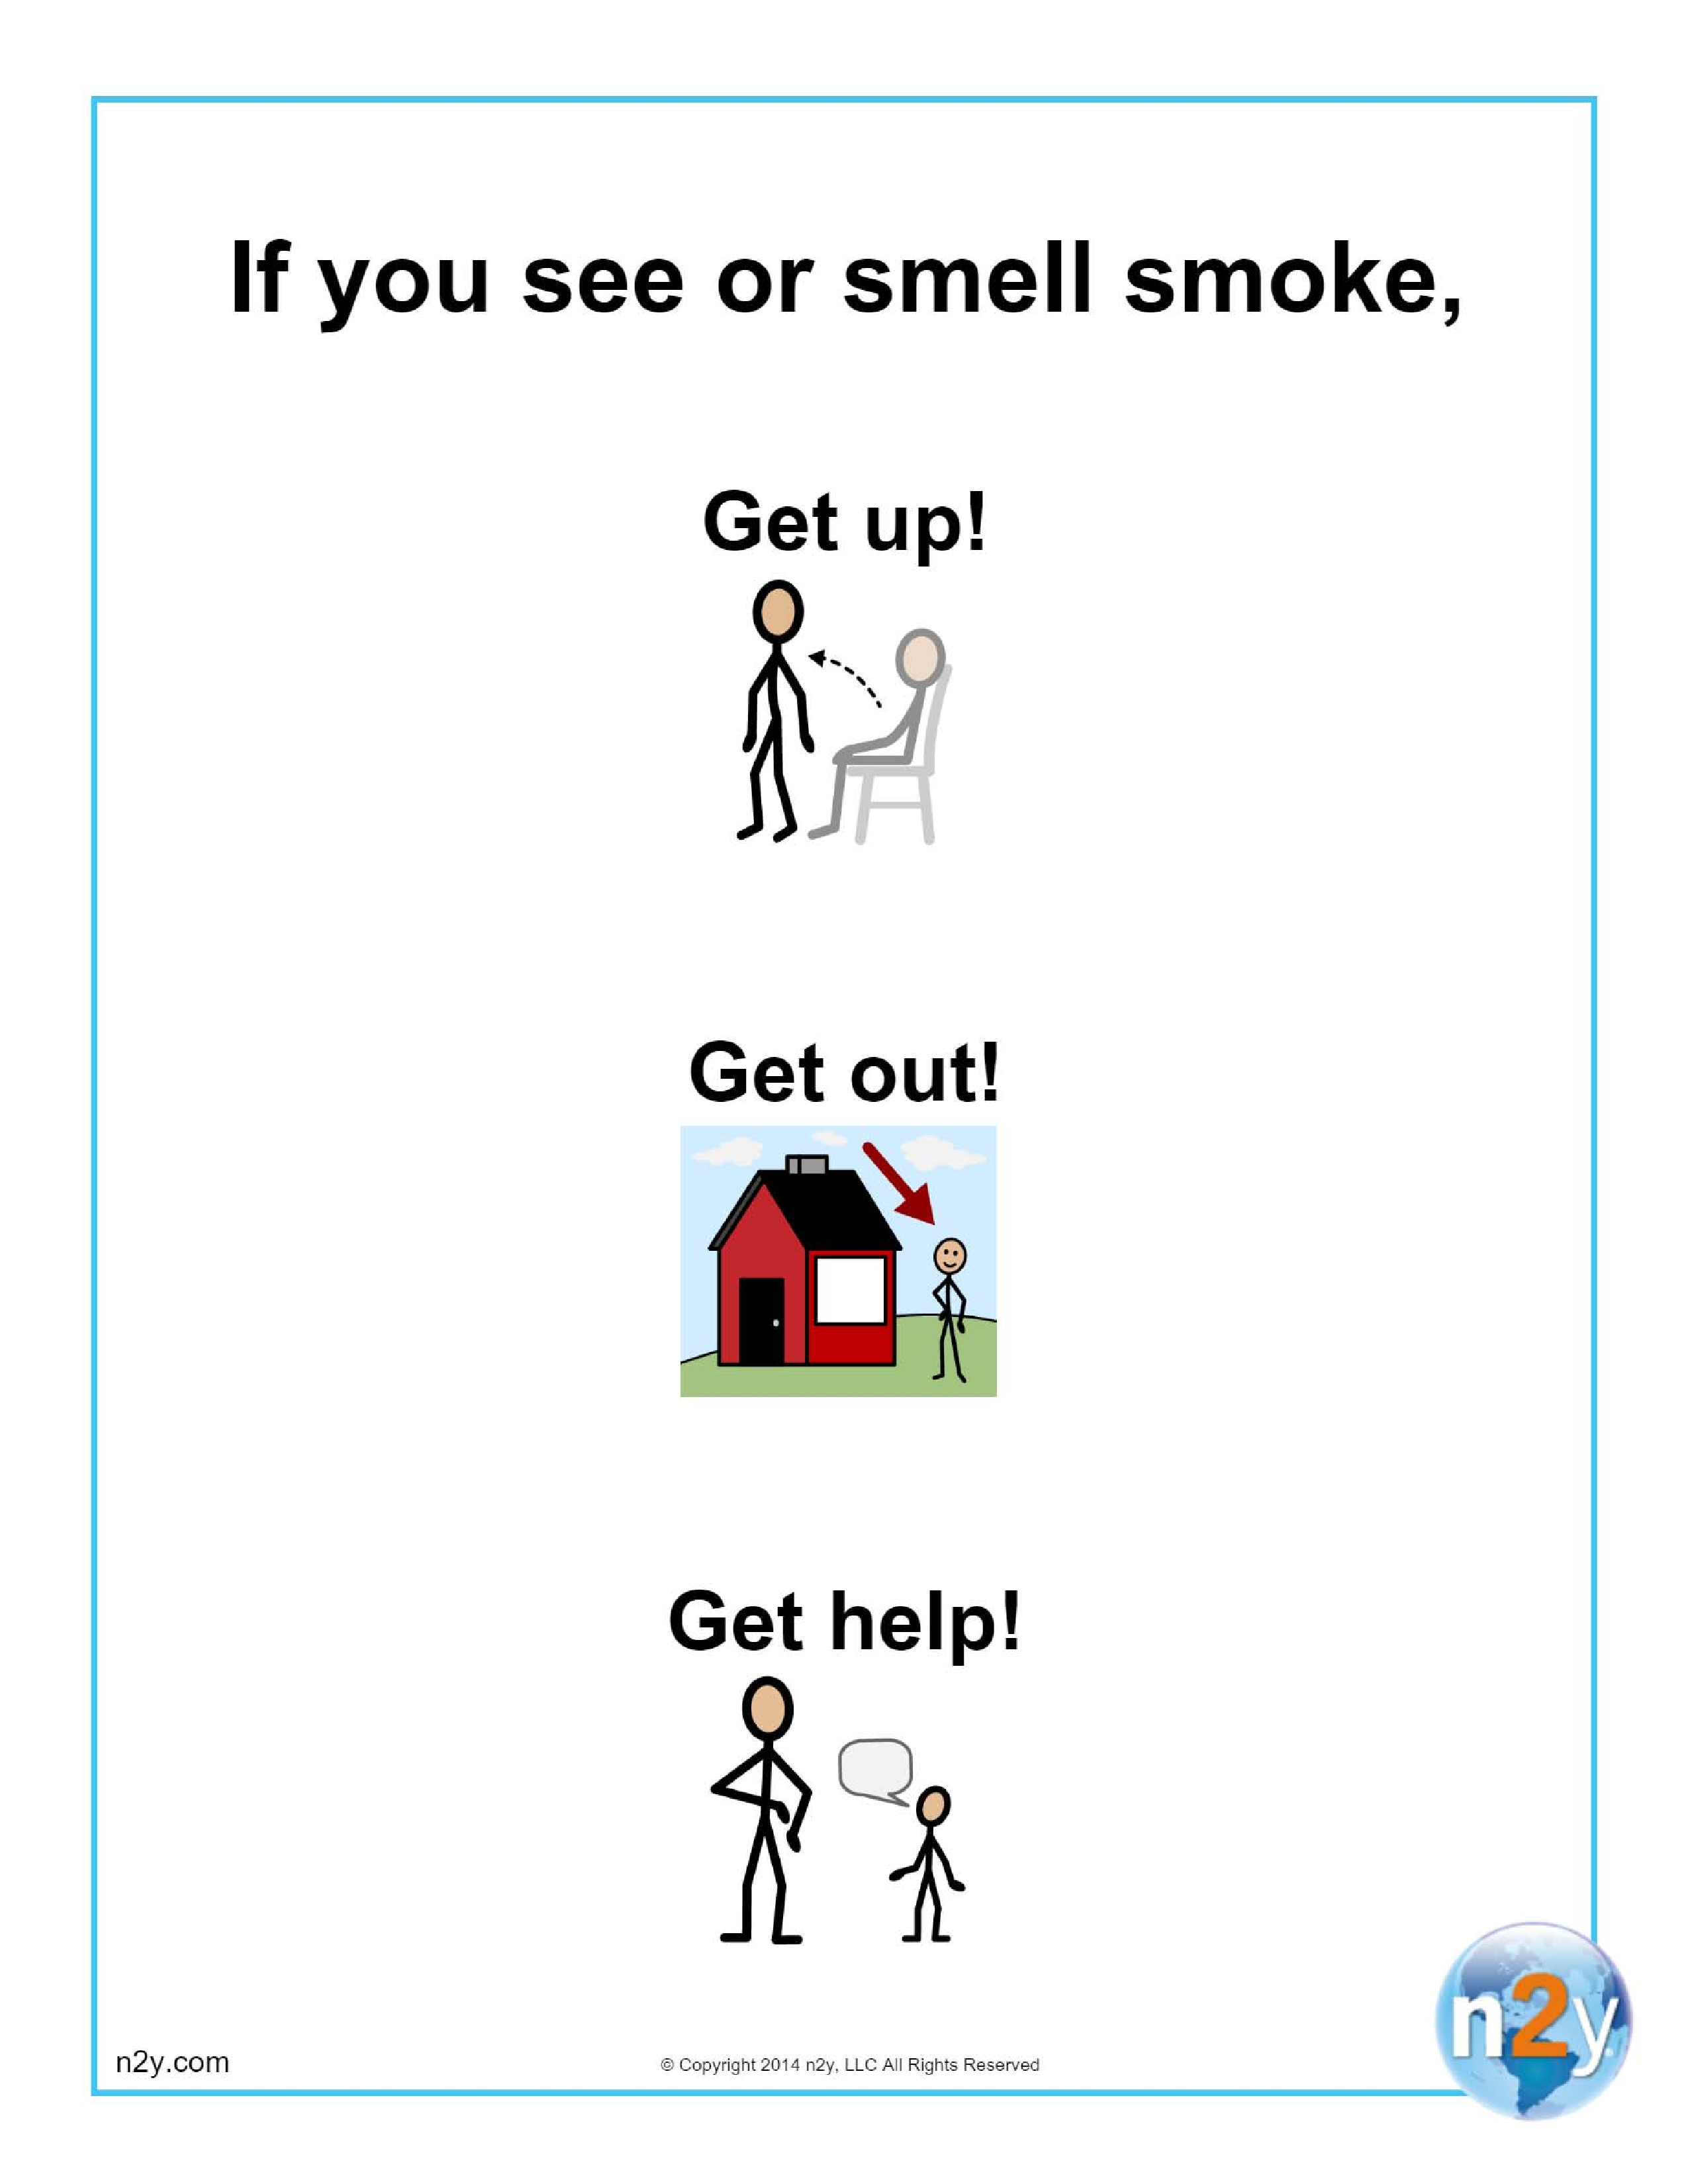 Would Special Education Rights Be Safe >> Keep Students Safe By Explaining What To Do If They See Or Smell